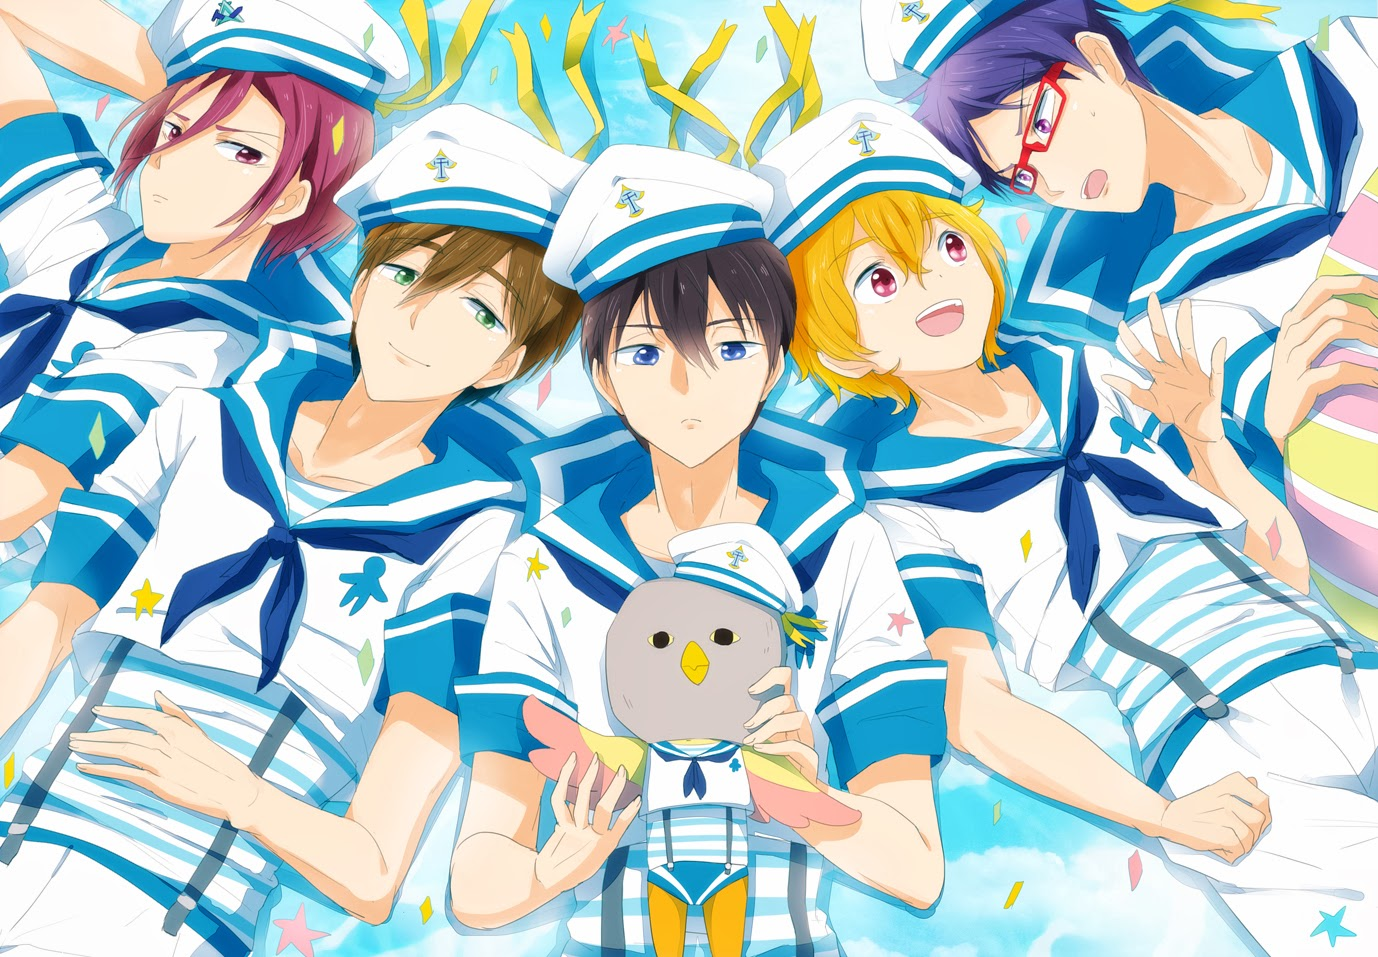 lunagareboshi free iwatobi swim club sailor uniform